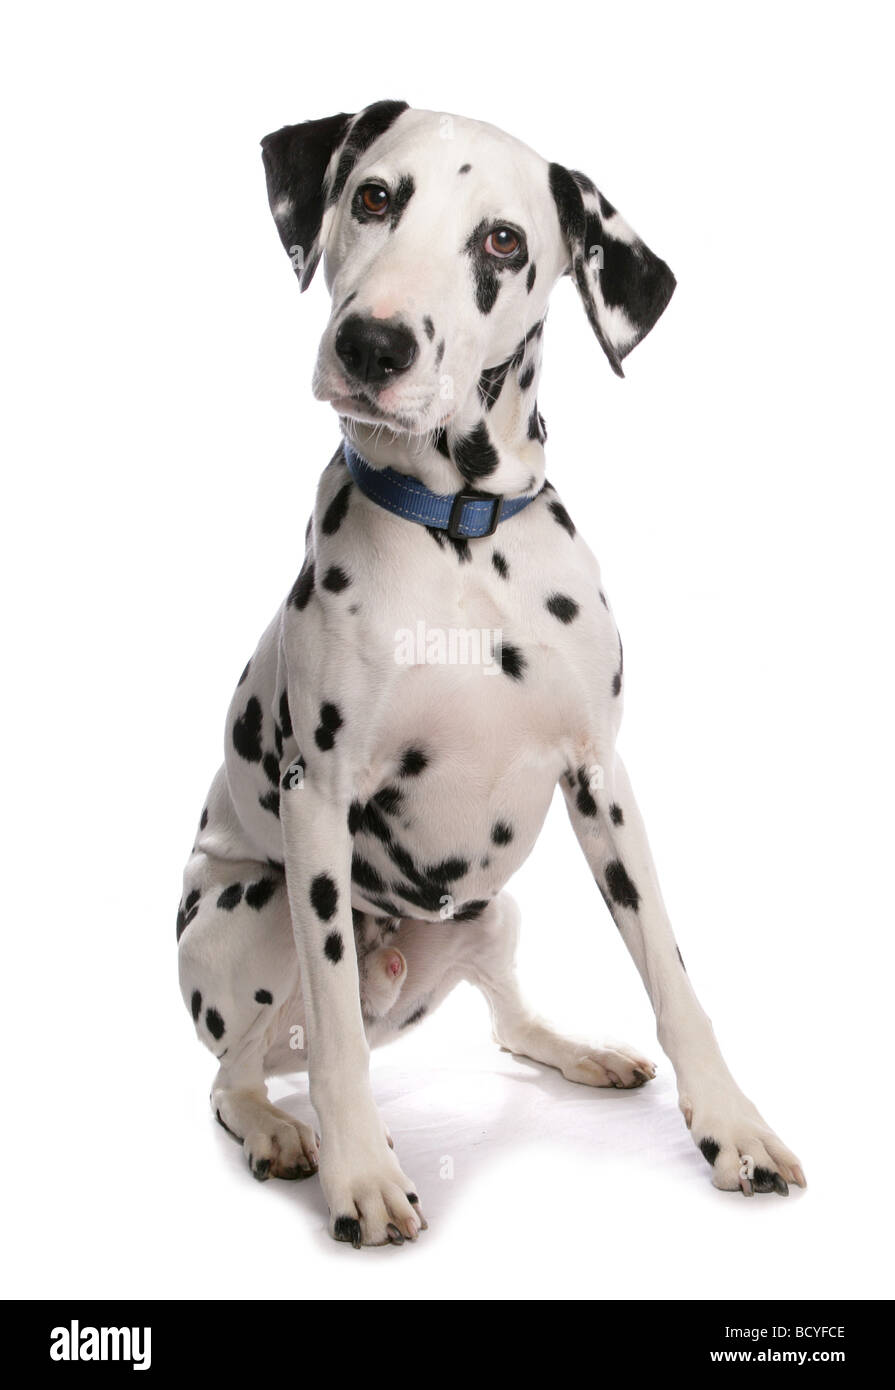 Dalmatian dog - sitting - cut out - Stock Image